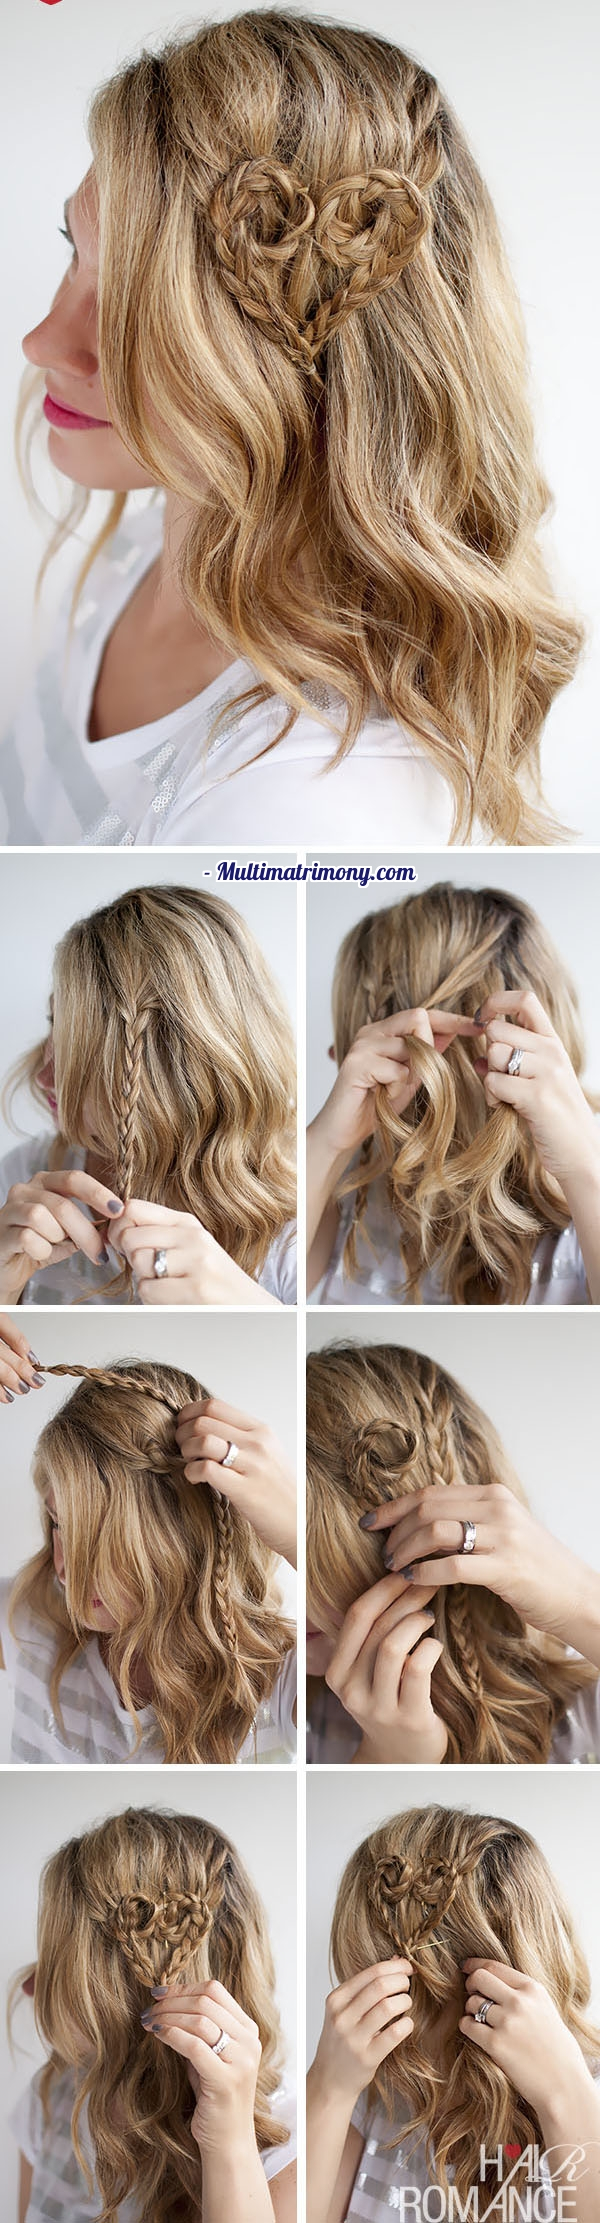 Heart Braid Tutorial from Hair Romance